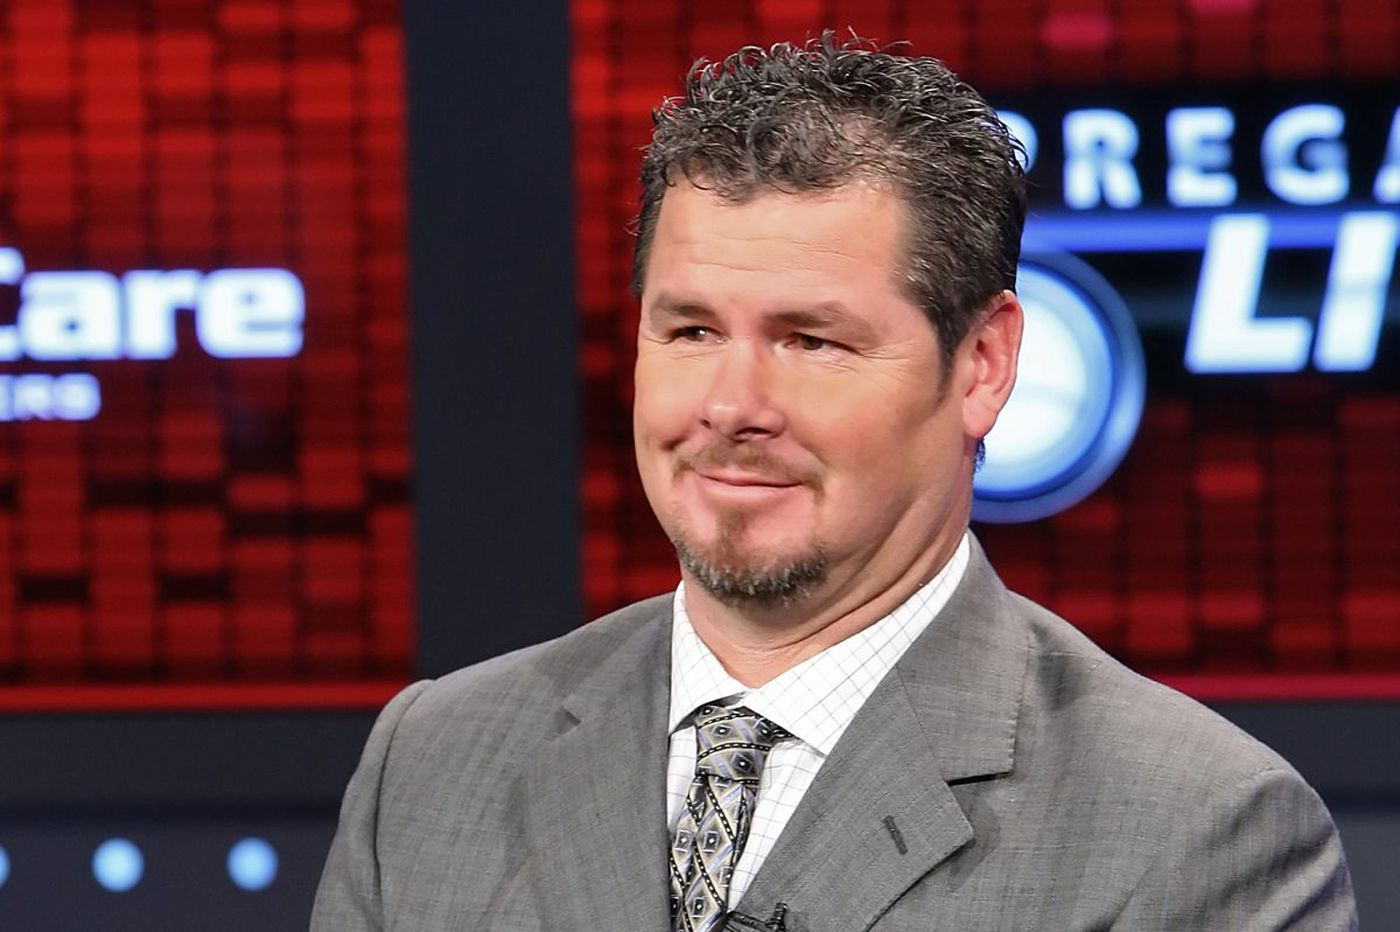 thing mitch williams wins lawsuit against mlb network